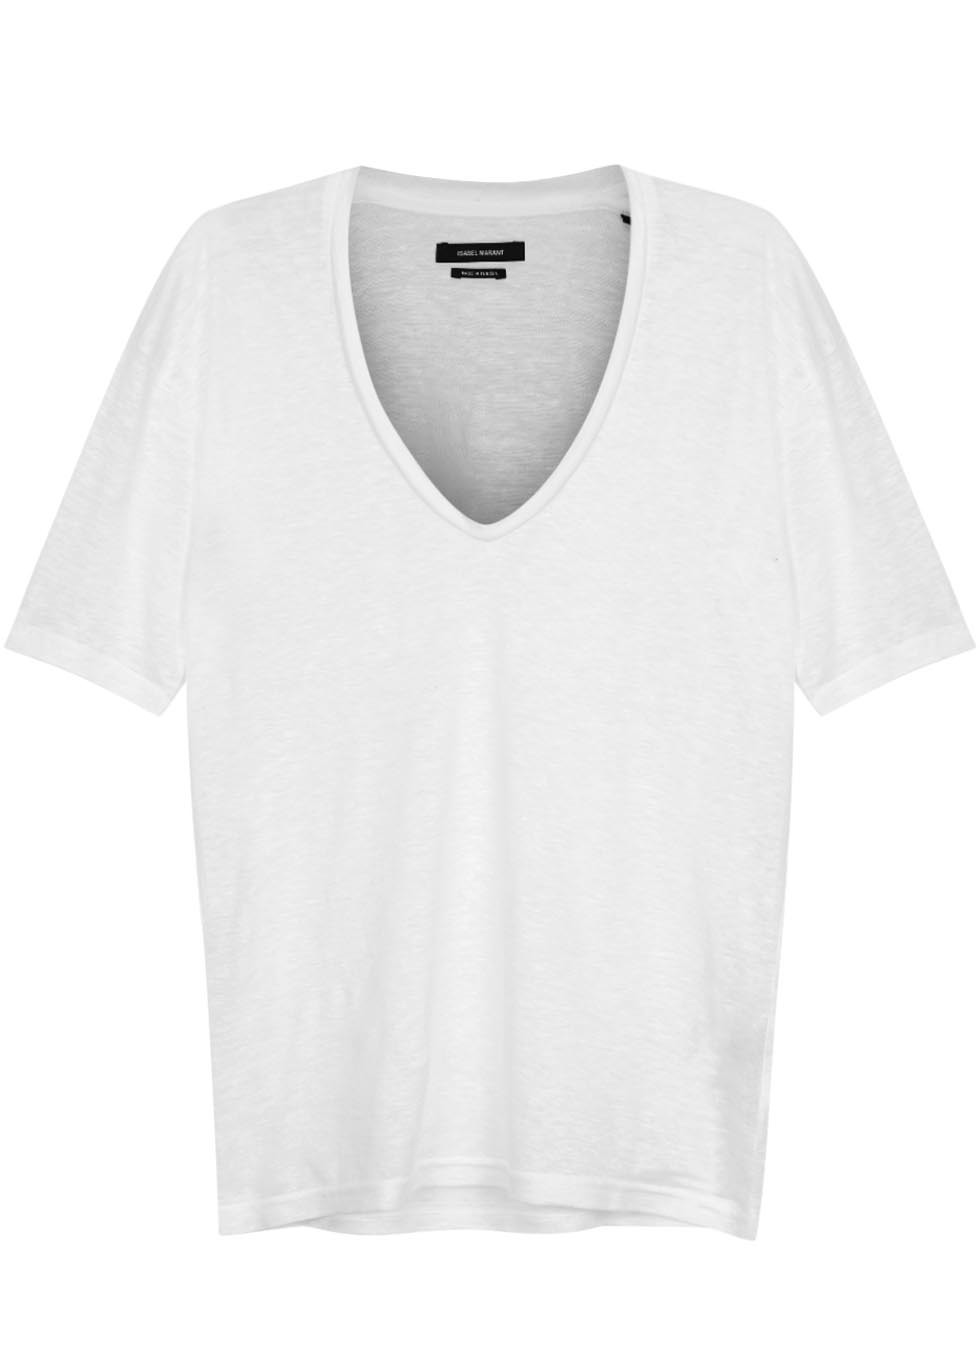 Maree White Slubbed Linen T Shirt - neckline: v-neck; pattern: plain; style: t-shirt; predominant colour: white; occasions: casual; length: standard; fibres: linen - 100%; fit: body skimming; sleeve length: short sleeve; sleeve style: standard; texture group: linen; pattern type: fabric; season: s/s 2016; wardrobe: basic